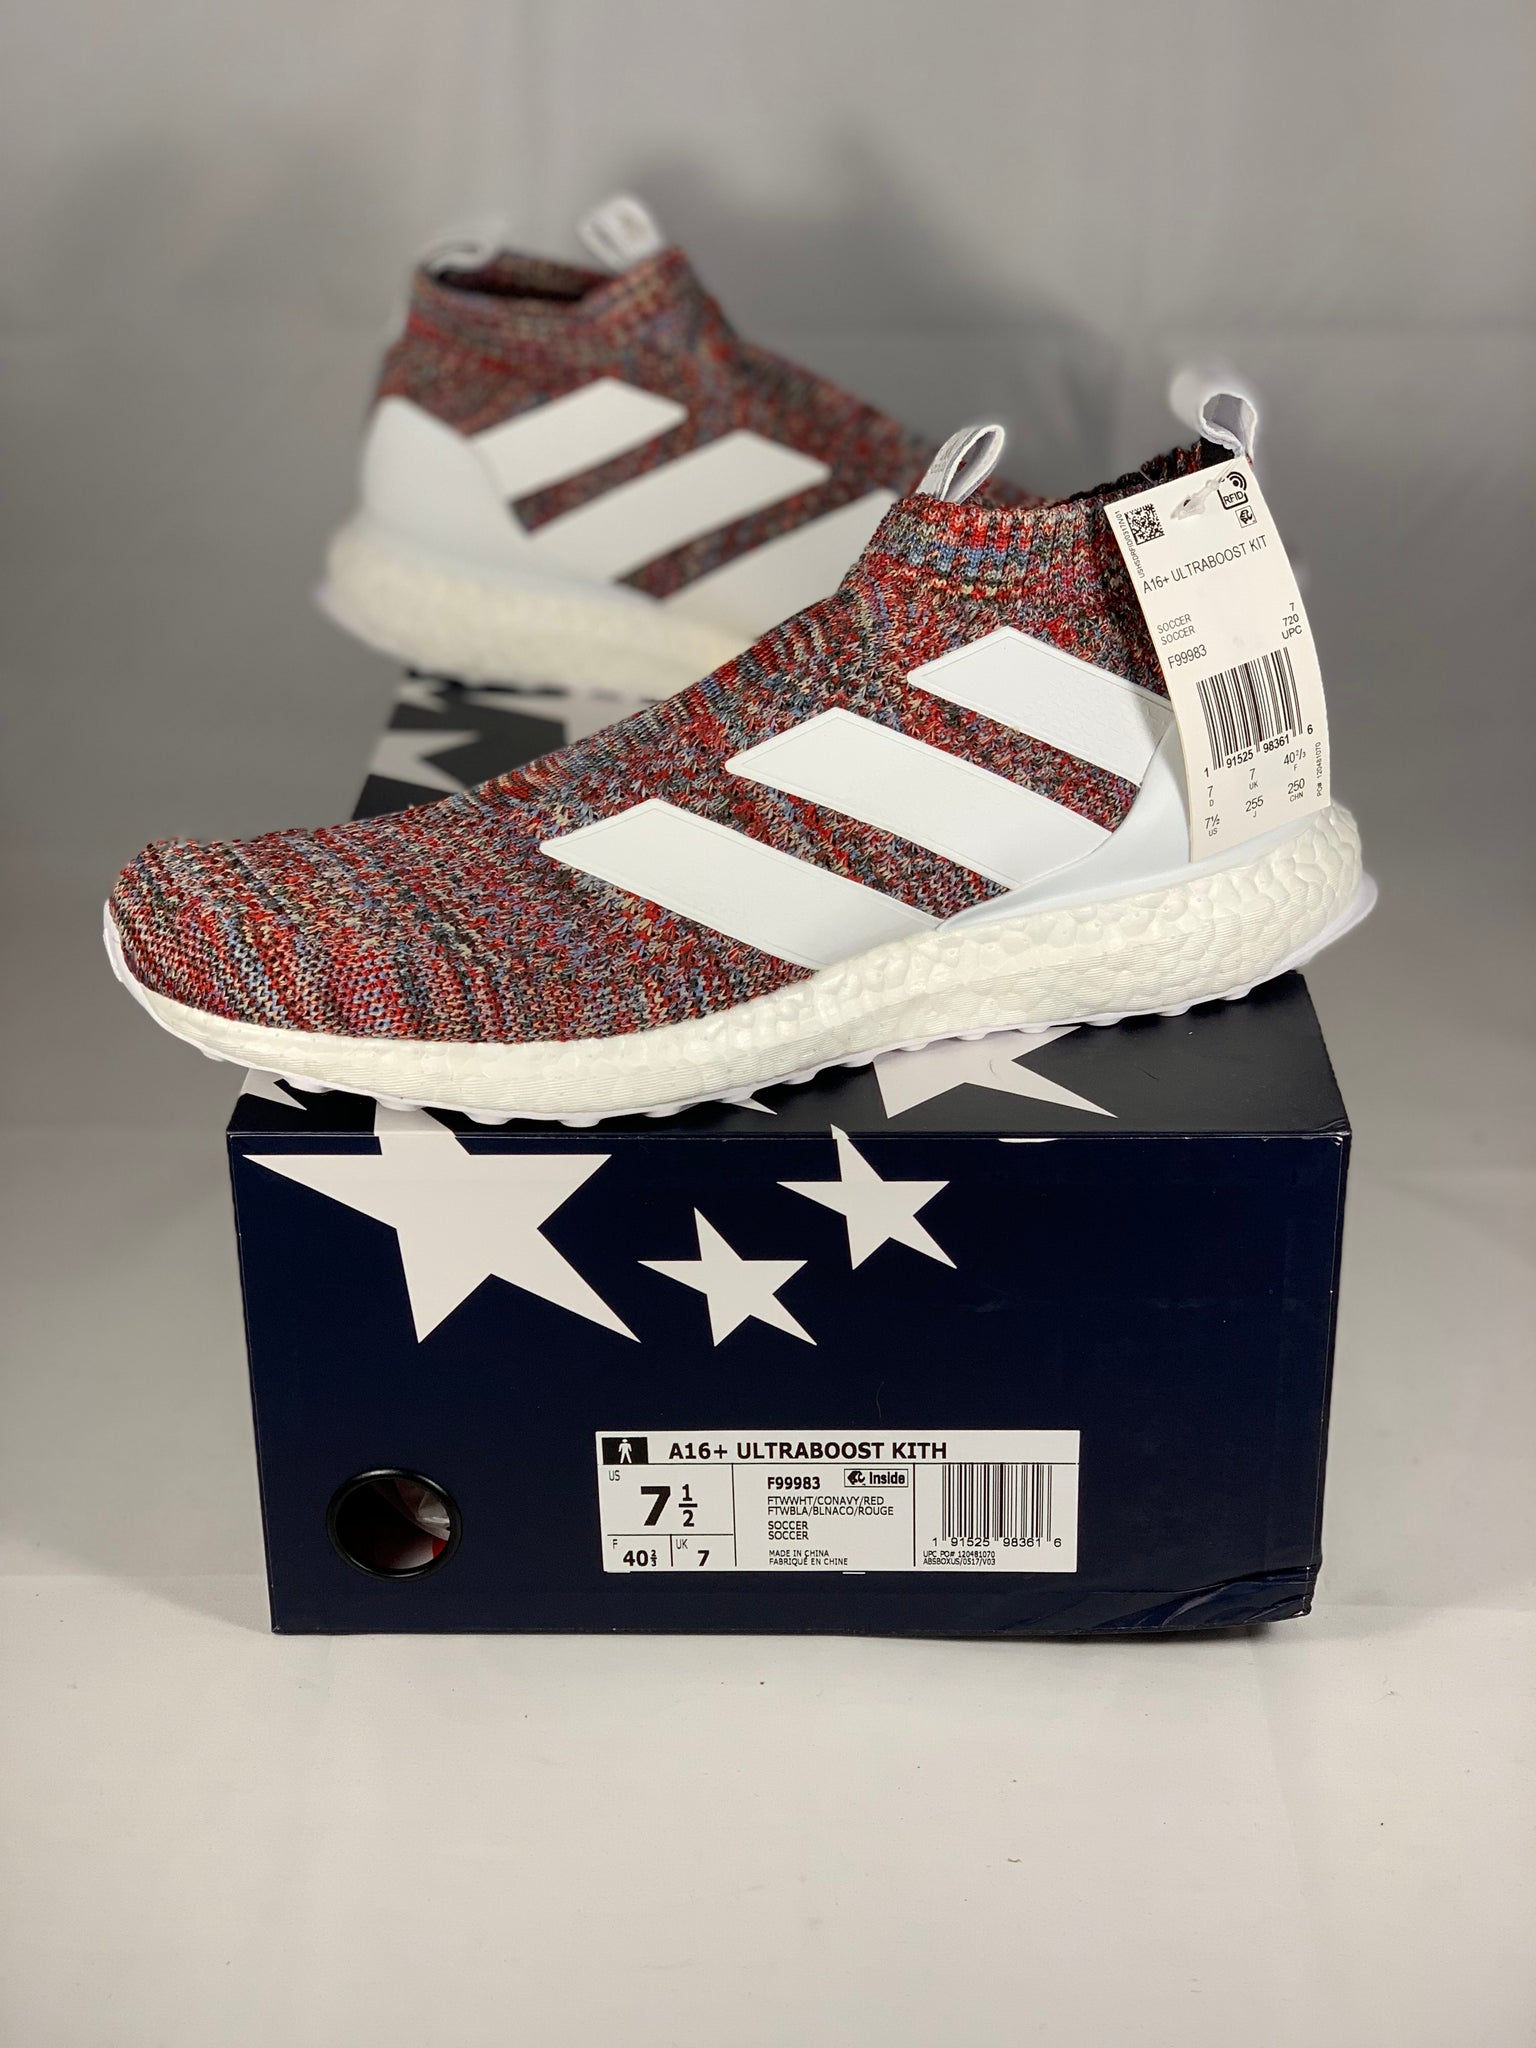 newest 926e6 59433 ADIDAS A16+ ULTRABOOST KITH ...